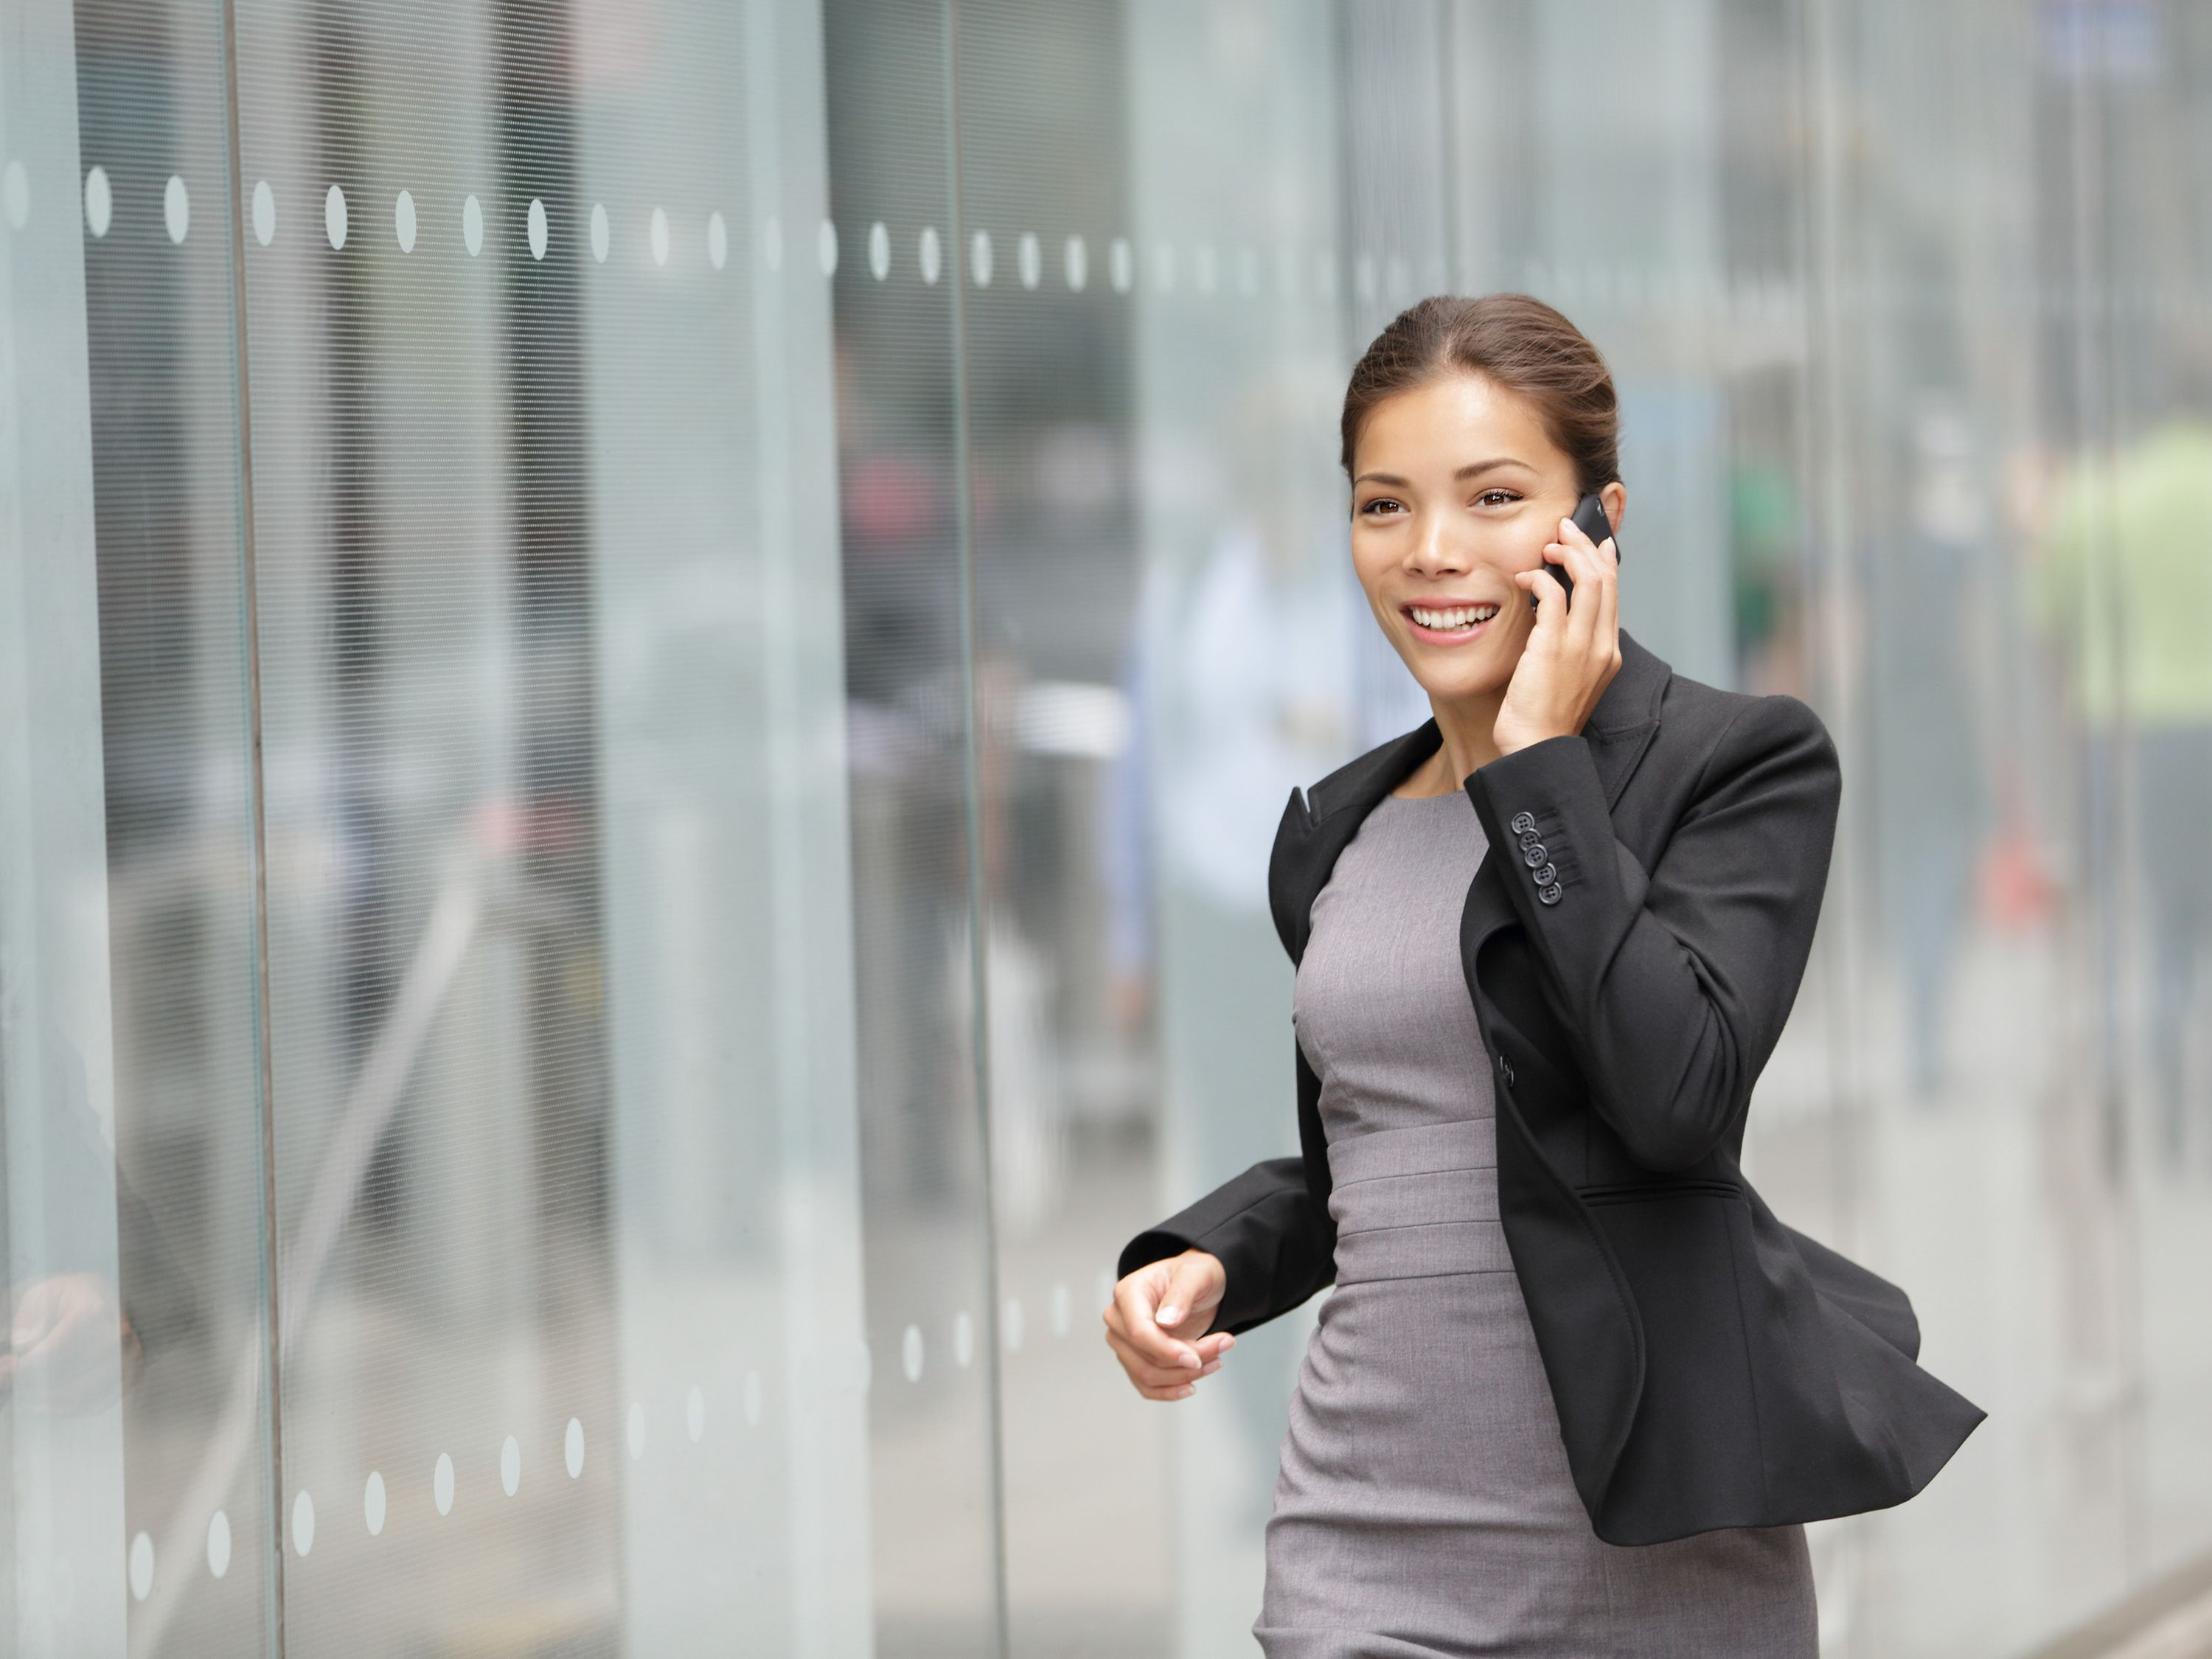 Phoning woman infront of glass facade